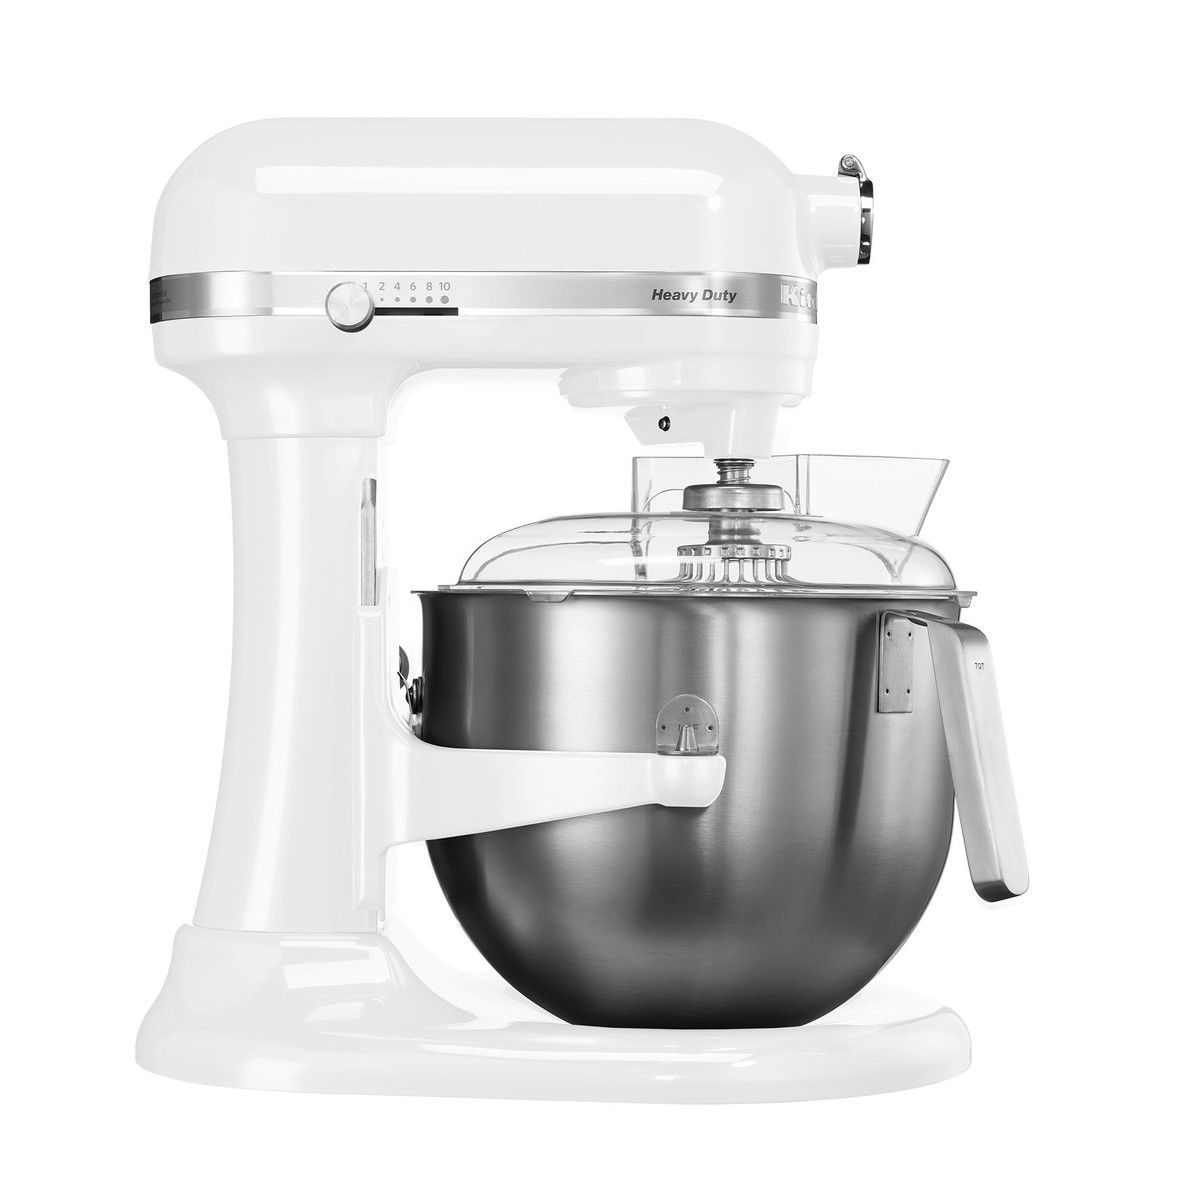 Heavy Duty 1 3 5ksm7591 Food Processor Kitchenaid